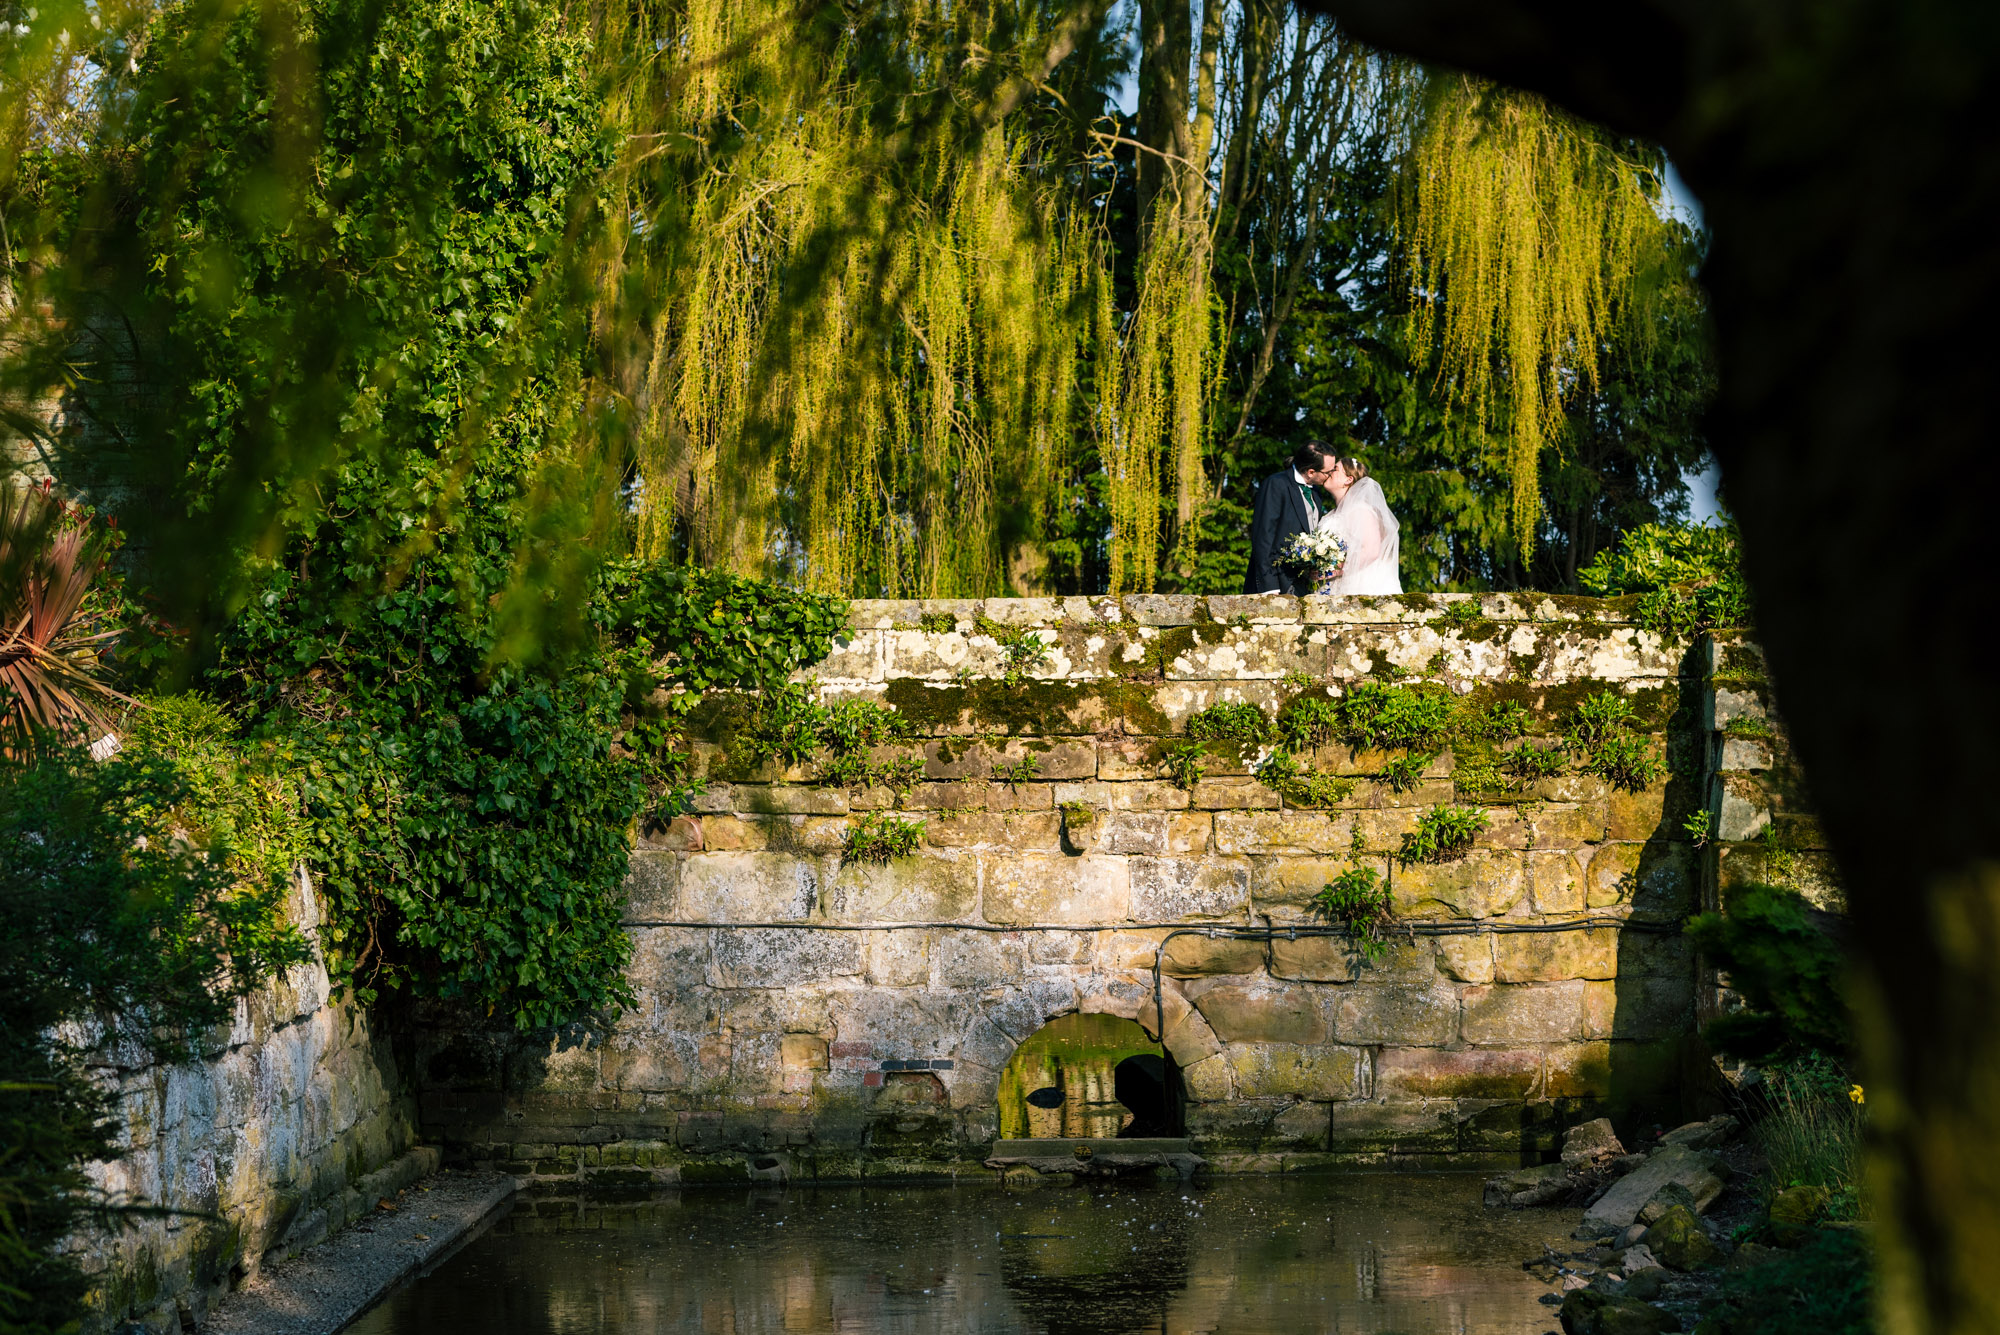 Bride and groom portraits on the bridge over the old moat